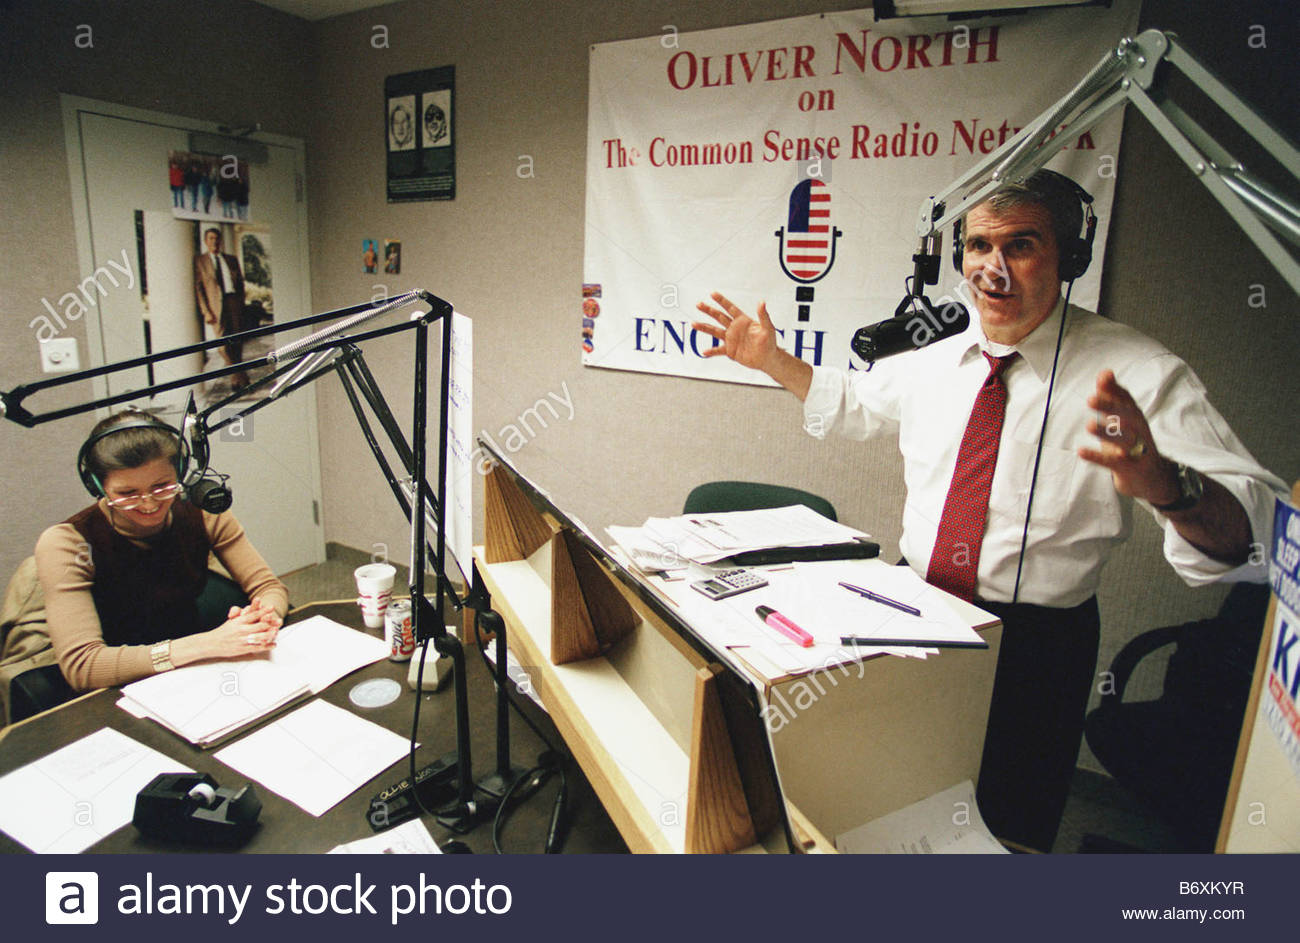 01 28 98 OLLIE NORTH RADIO SHOW Oliver North with guest Karen Kerrigan president of the Small Business Survival - Stock Image